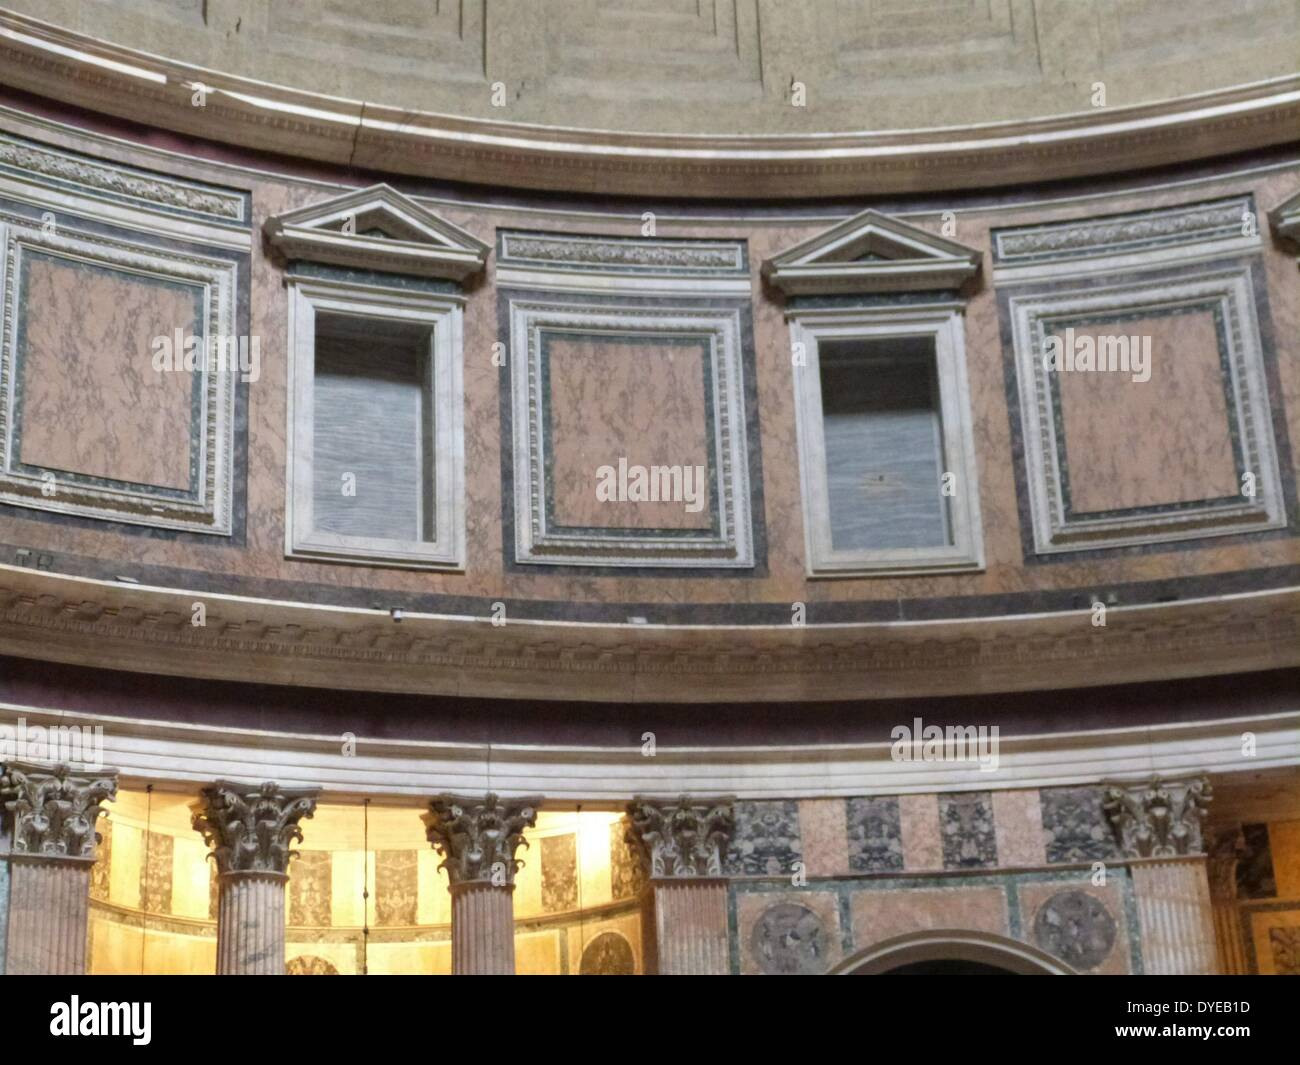 Scenes from the Pantheon (Rome). An ancient Roman temple dedicated to the gods of Olympus - Stock Image